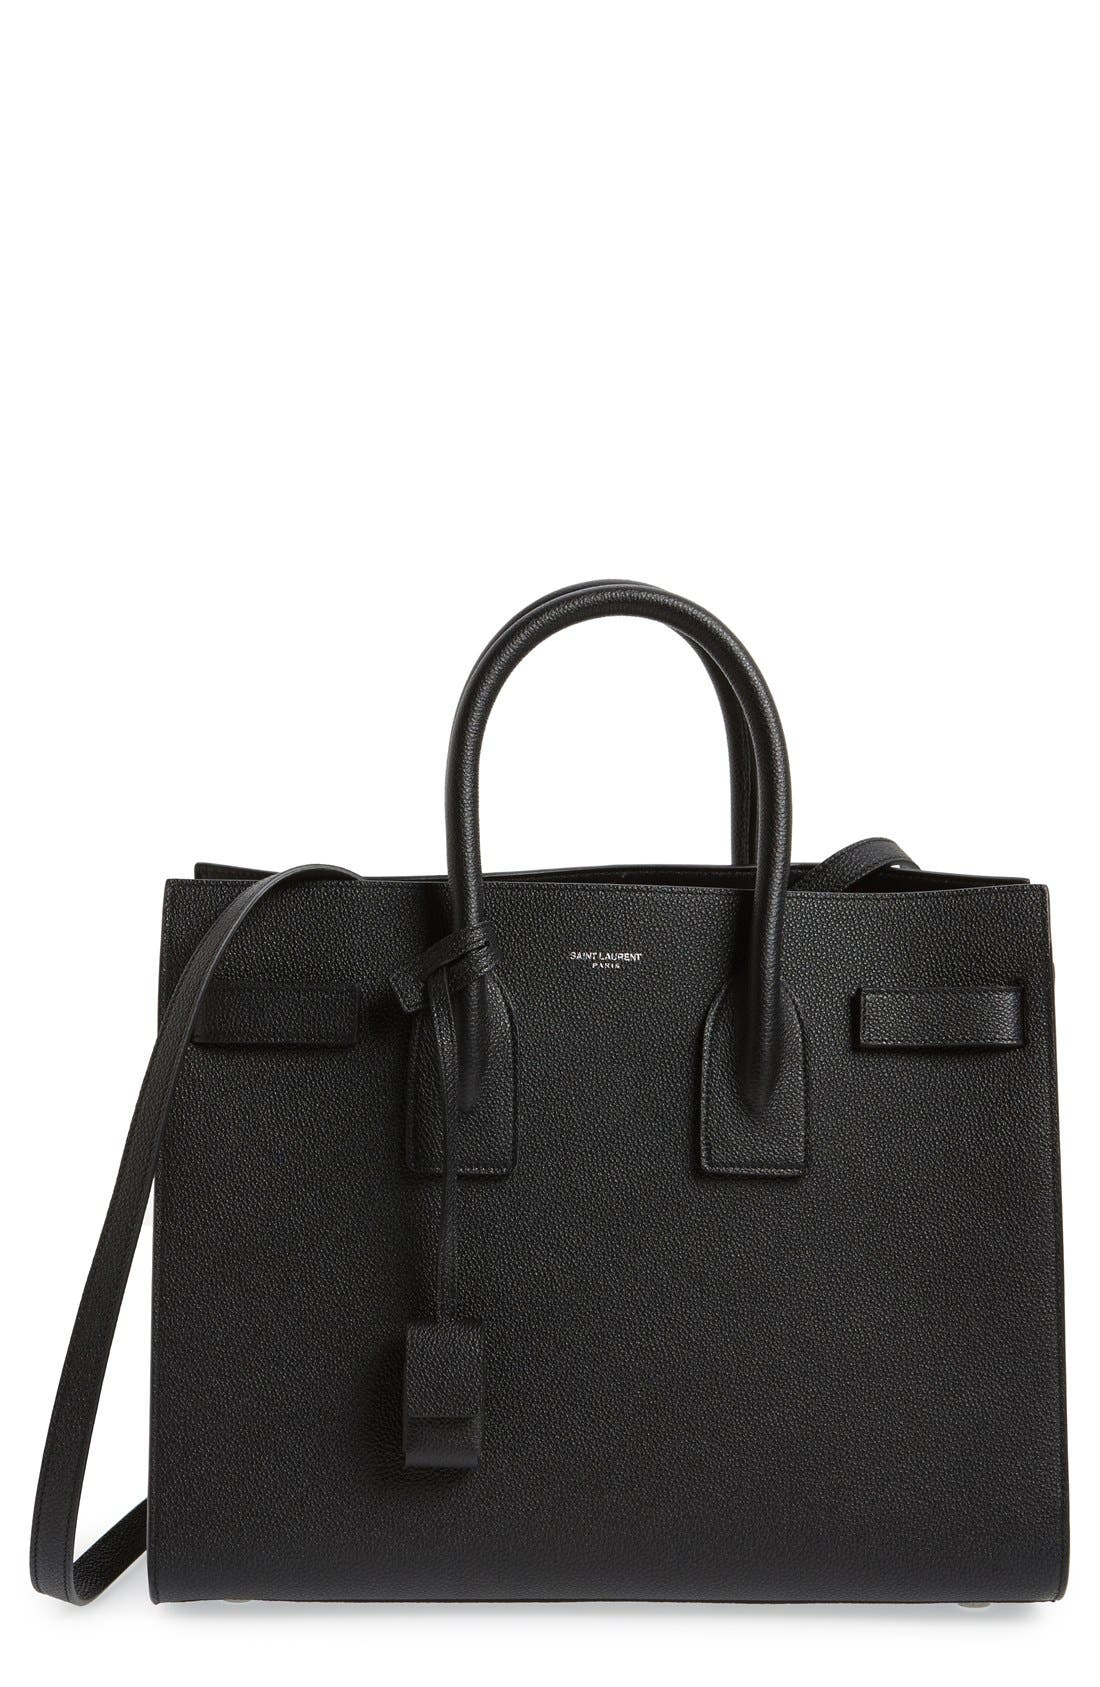 saint laurent sac de jour small grain leather tote bag black modesens. Black Bedroom Furniture Sets. Home Design Ideas